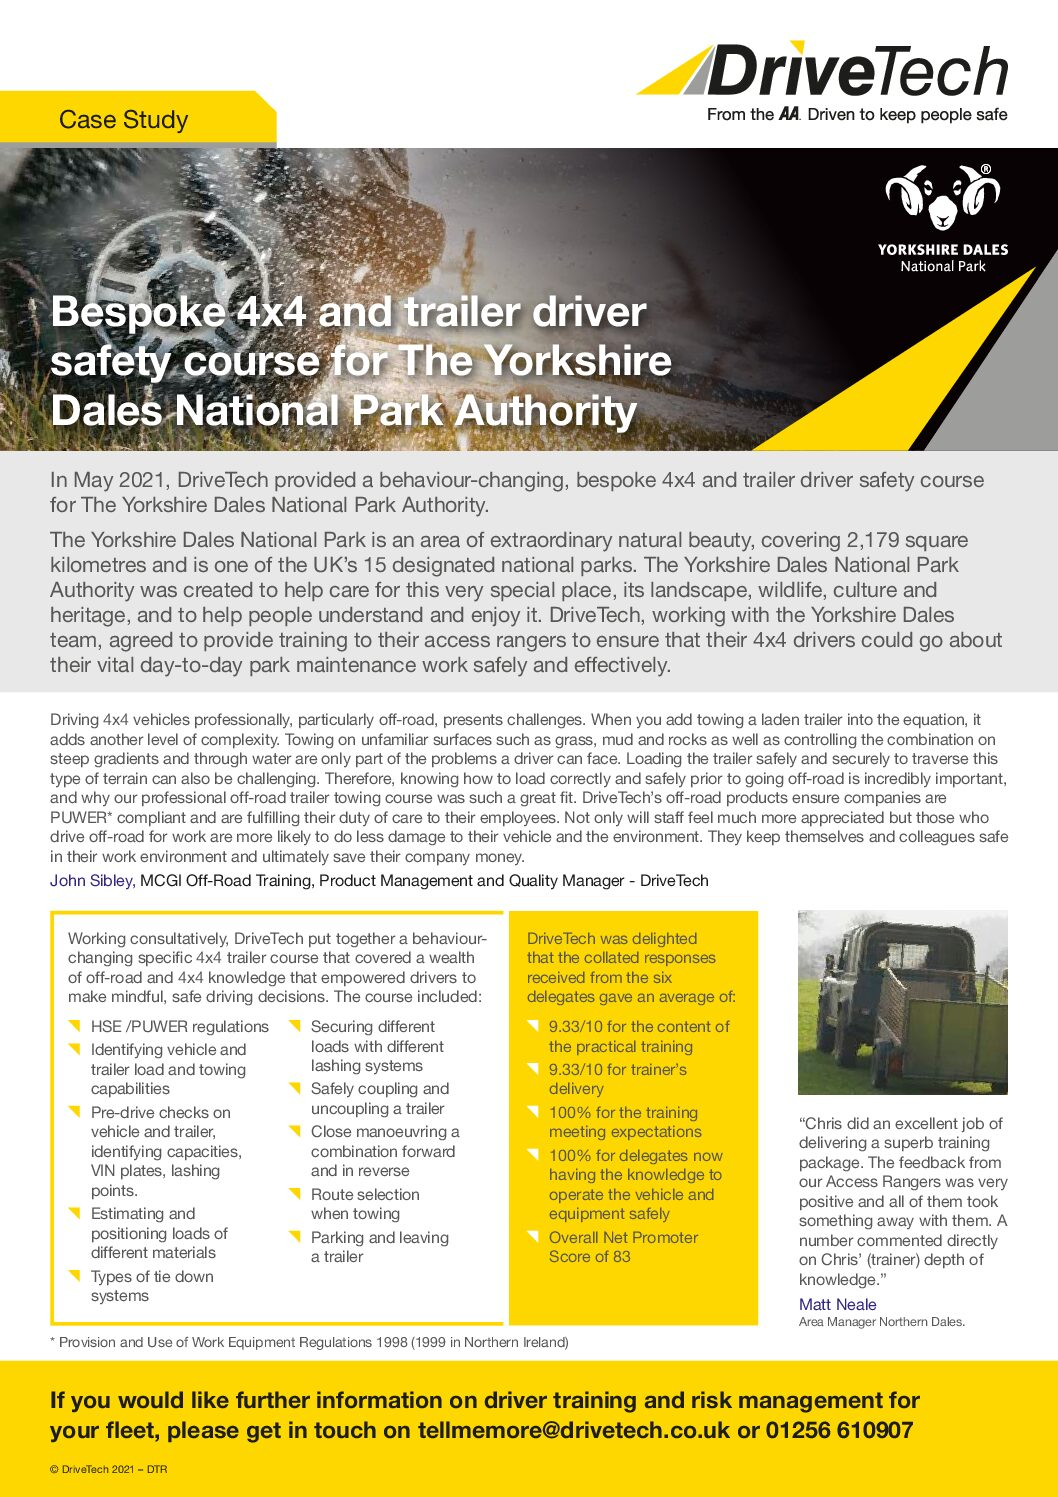 Bespoke 4×4 and trailer driver safety course for Yorkshire Dales National Park Authority